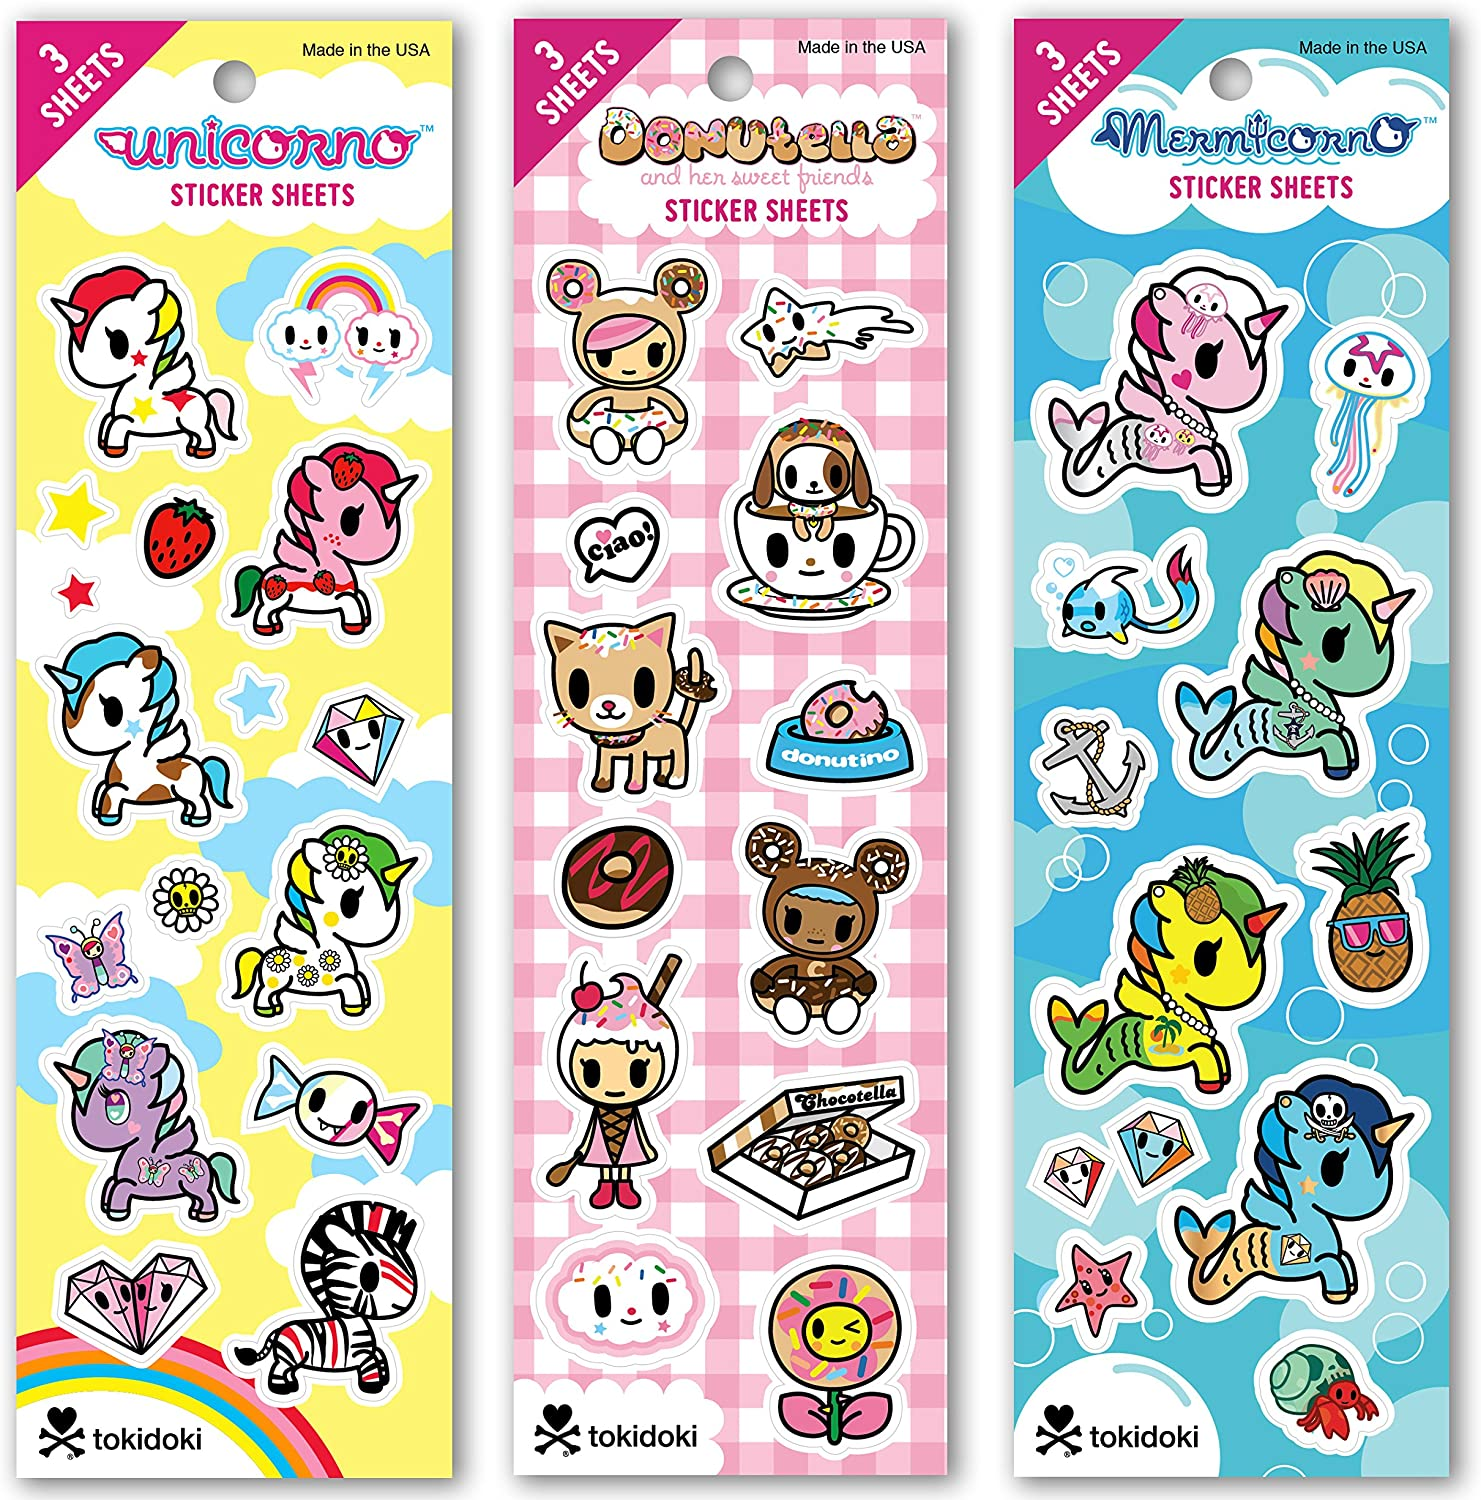 9 Sheets Total 3 Sheets Each Re-marks Tokidoki Sticker Sheet 3 pack